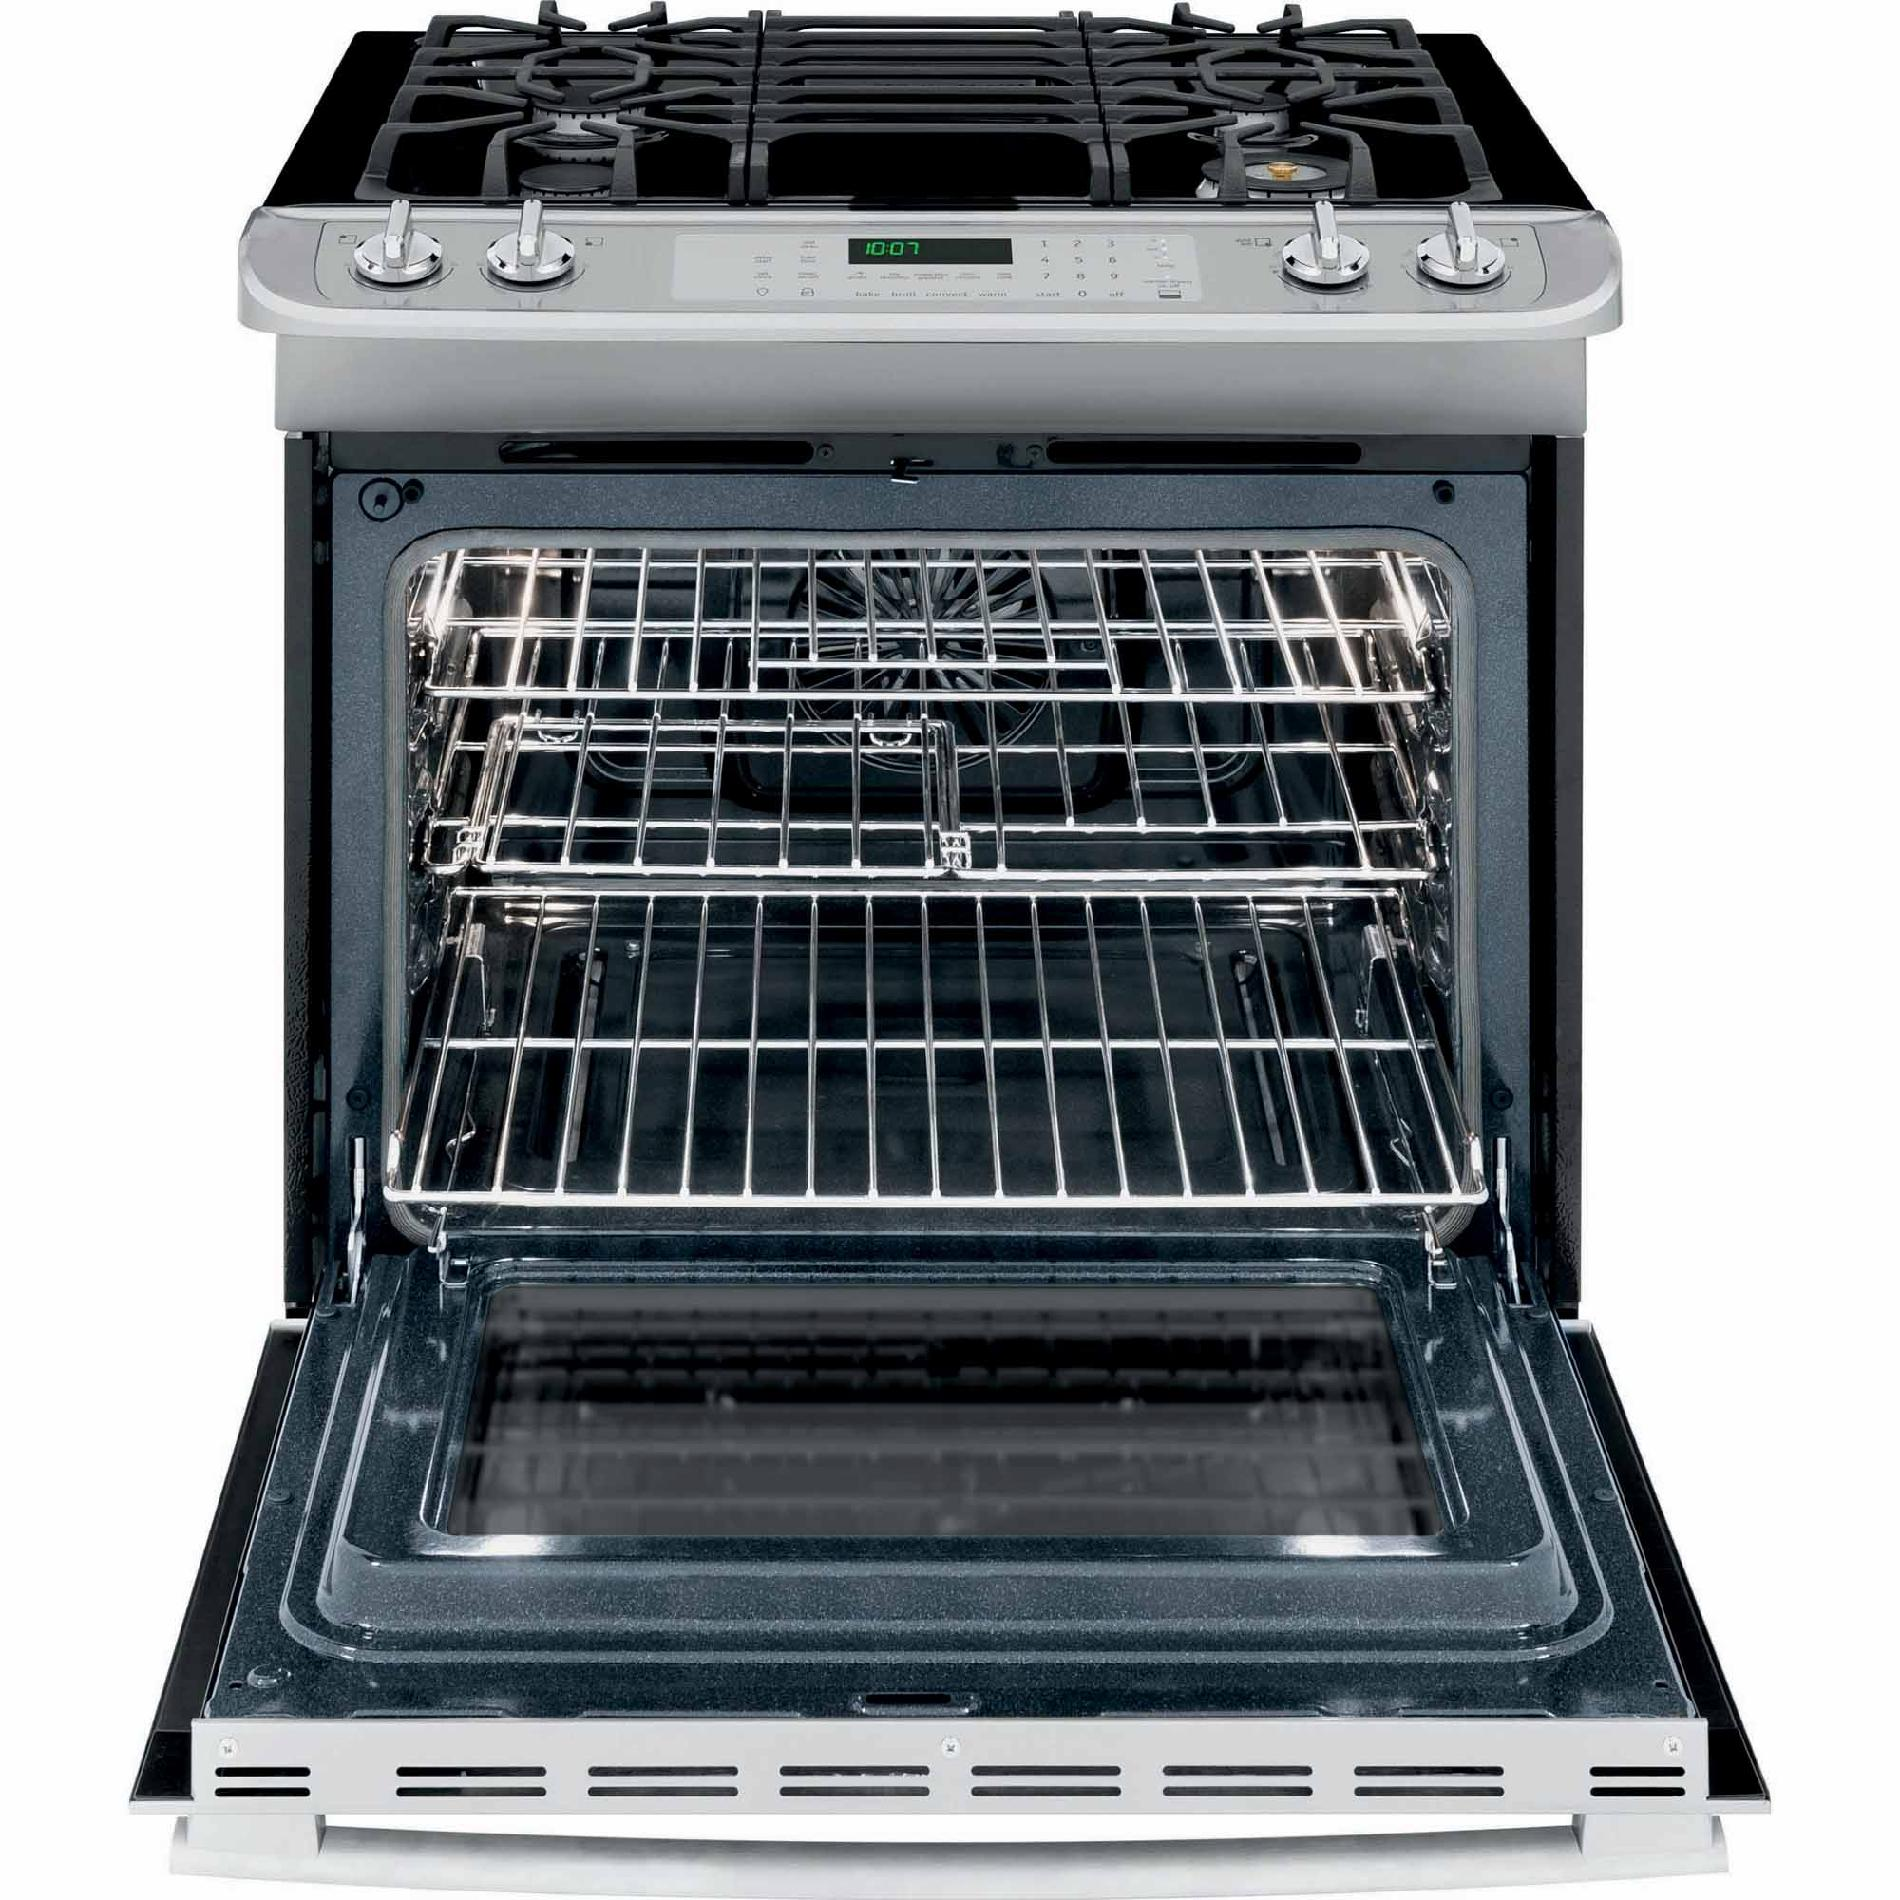 Frigidaire Professional 4.6 cu. ft. Slide-In Gas Range w/ Smudge-Proof™ - Stainless Steel